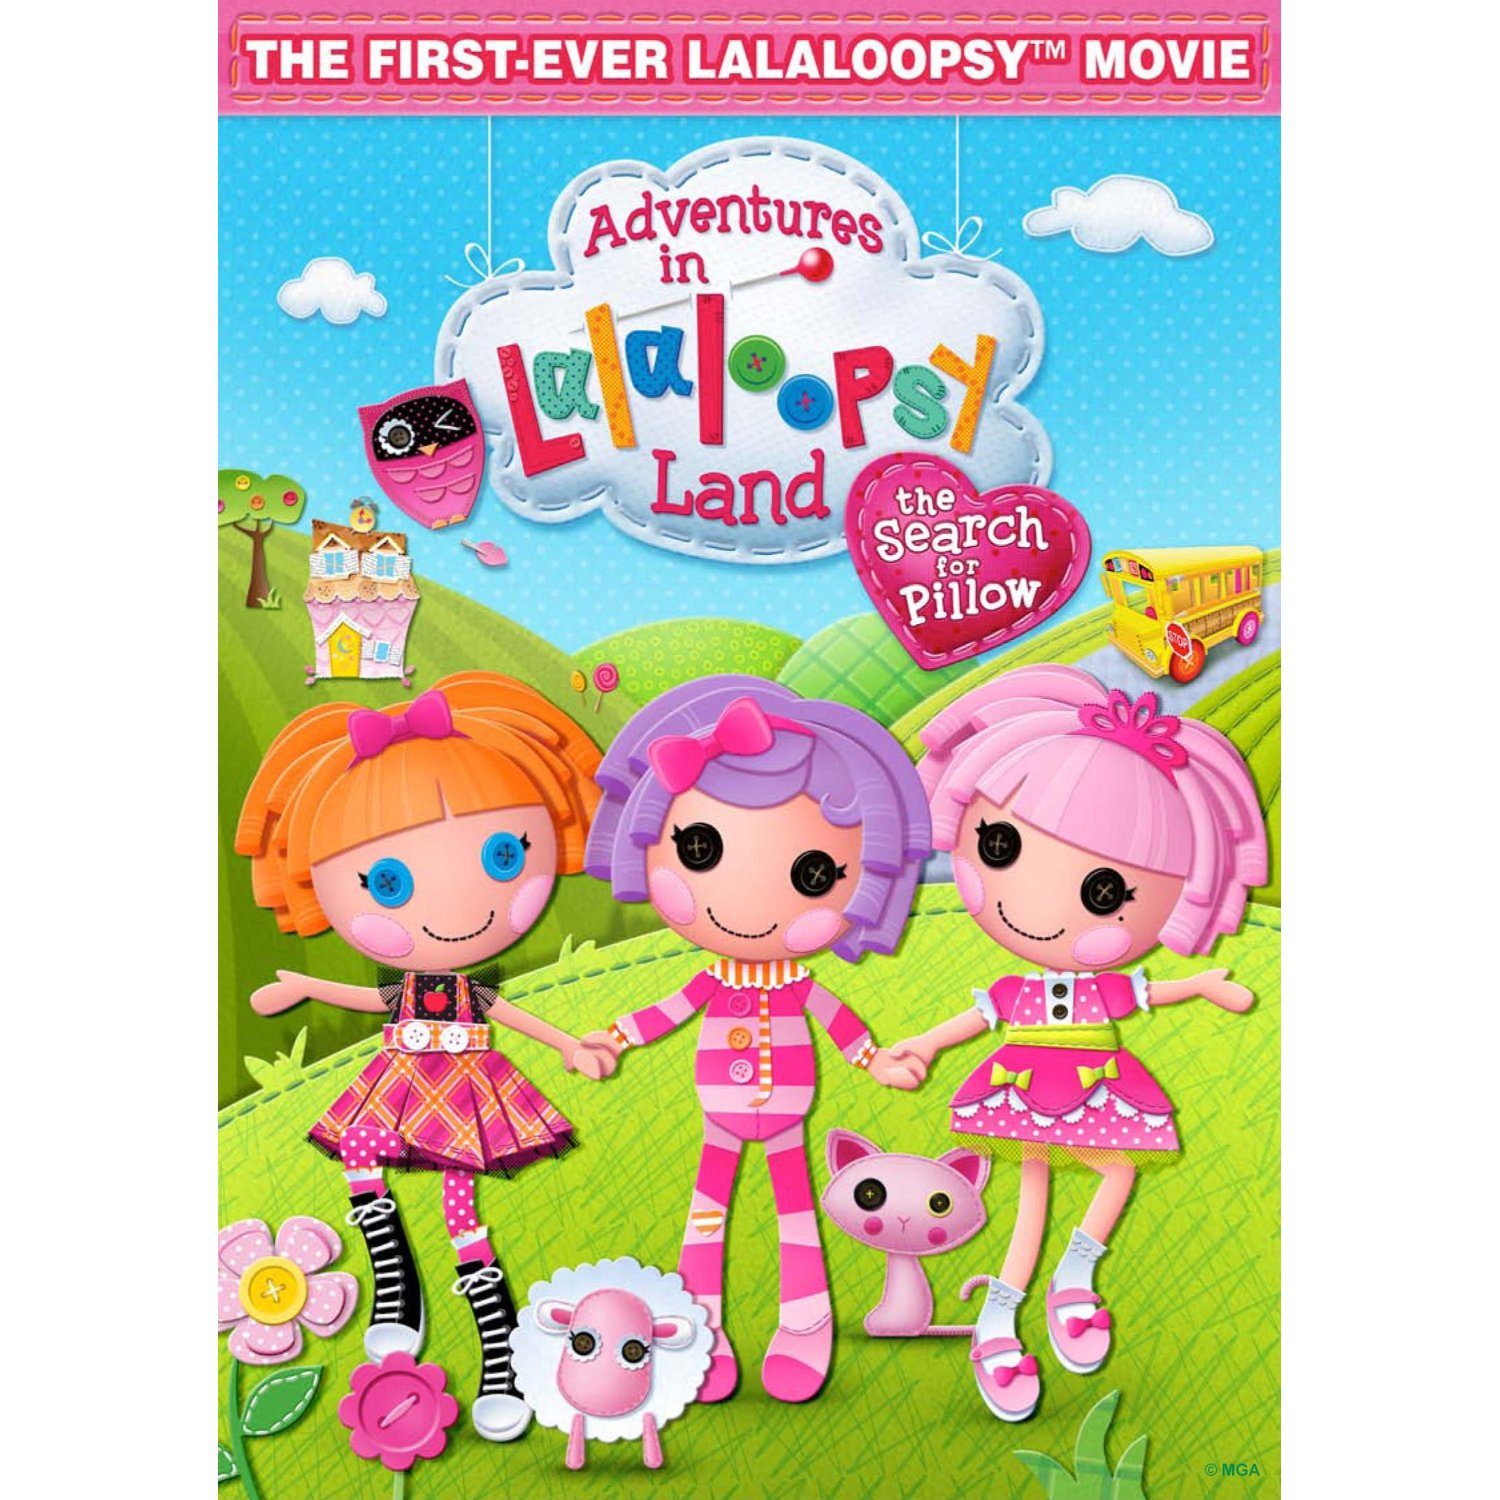 $2 Adventures in Lalaloopsy Land: The Search for Pillow DVD Coupon ...